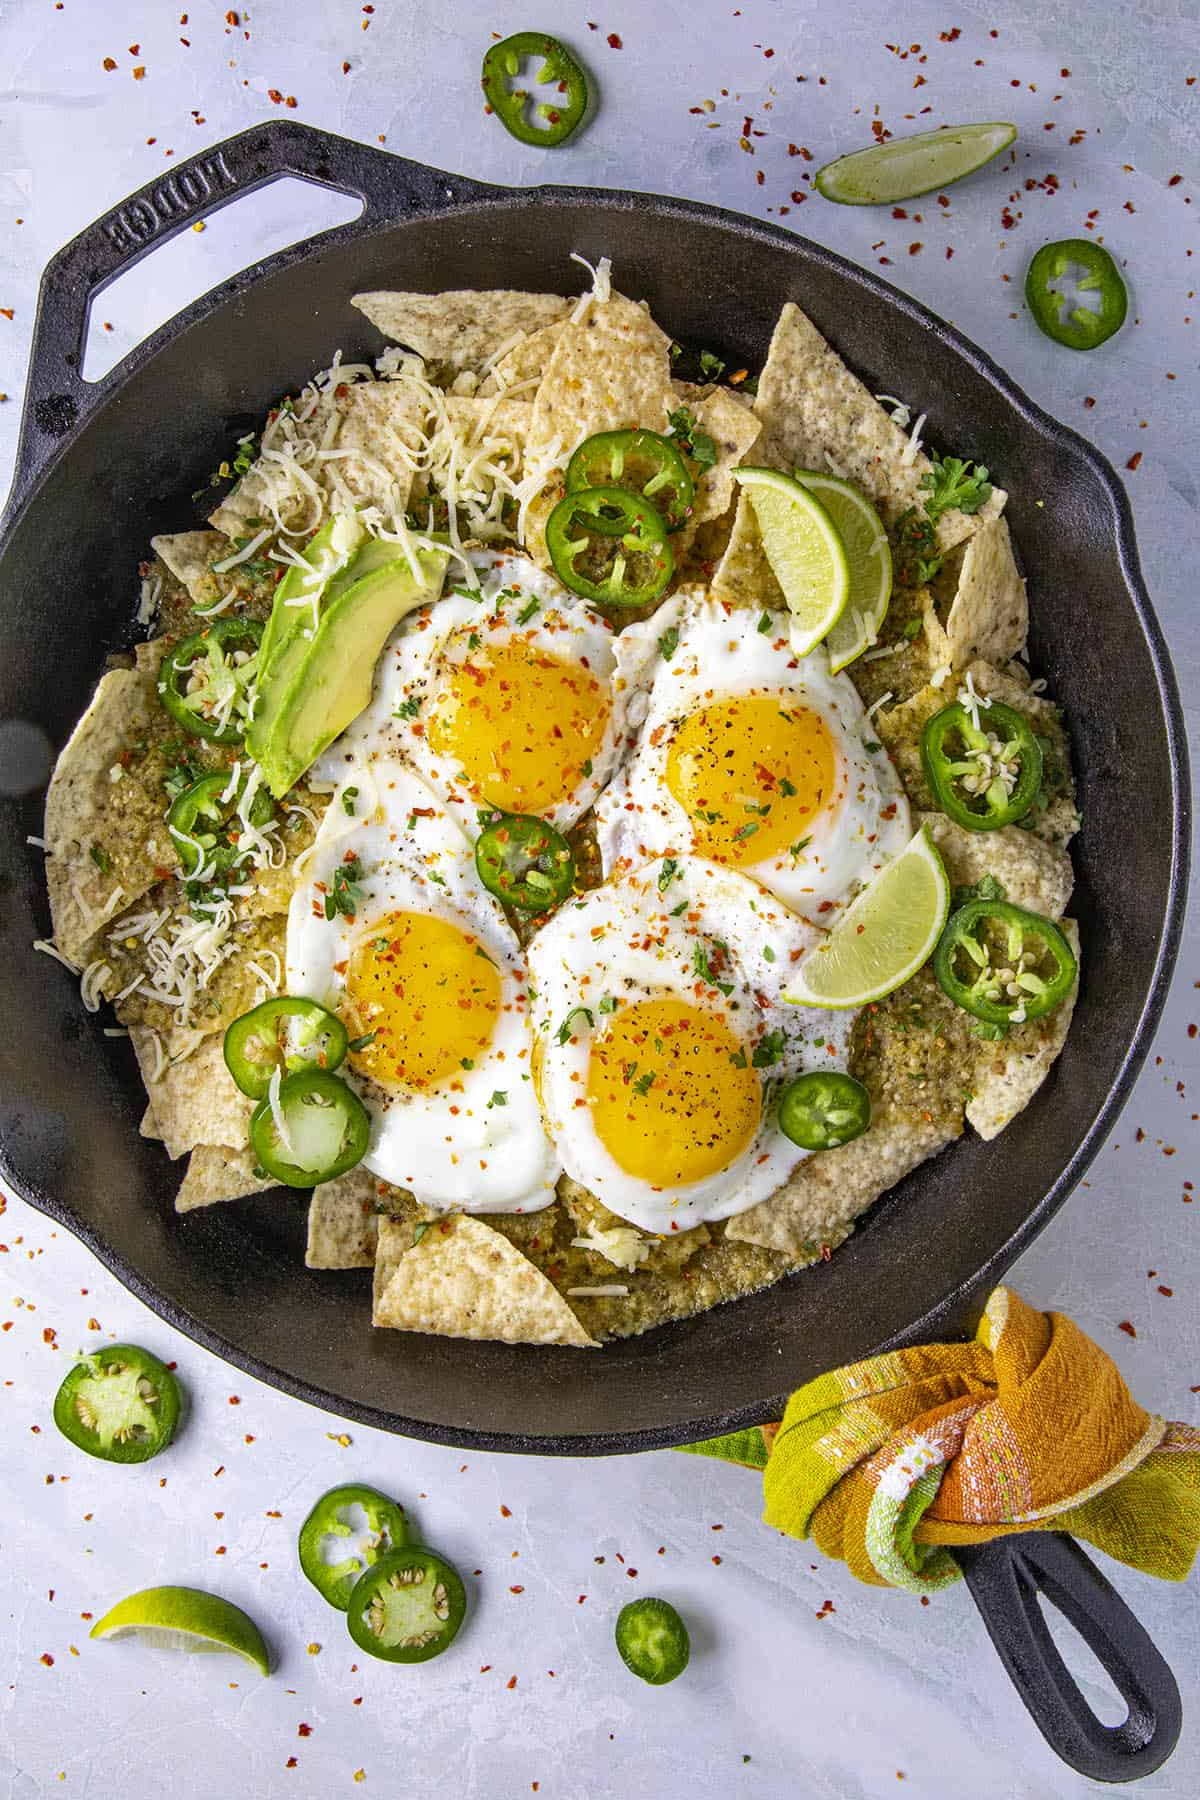 Chilaquiles Verdes in a pan, ready to serve